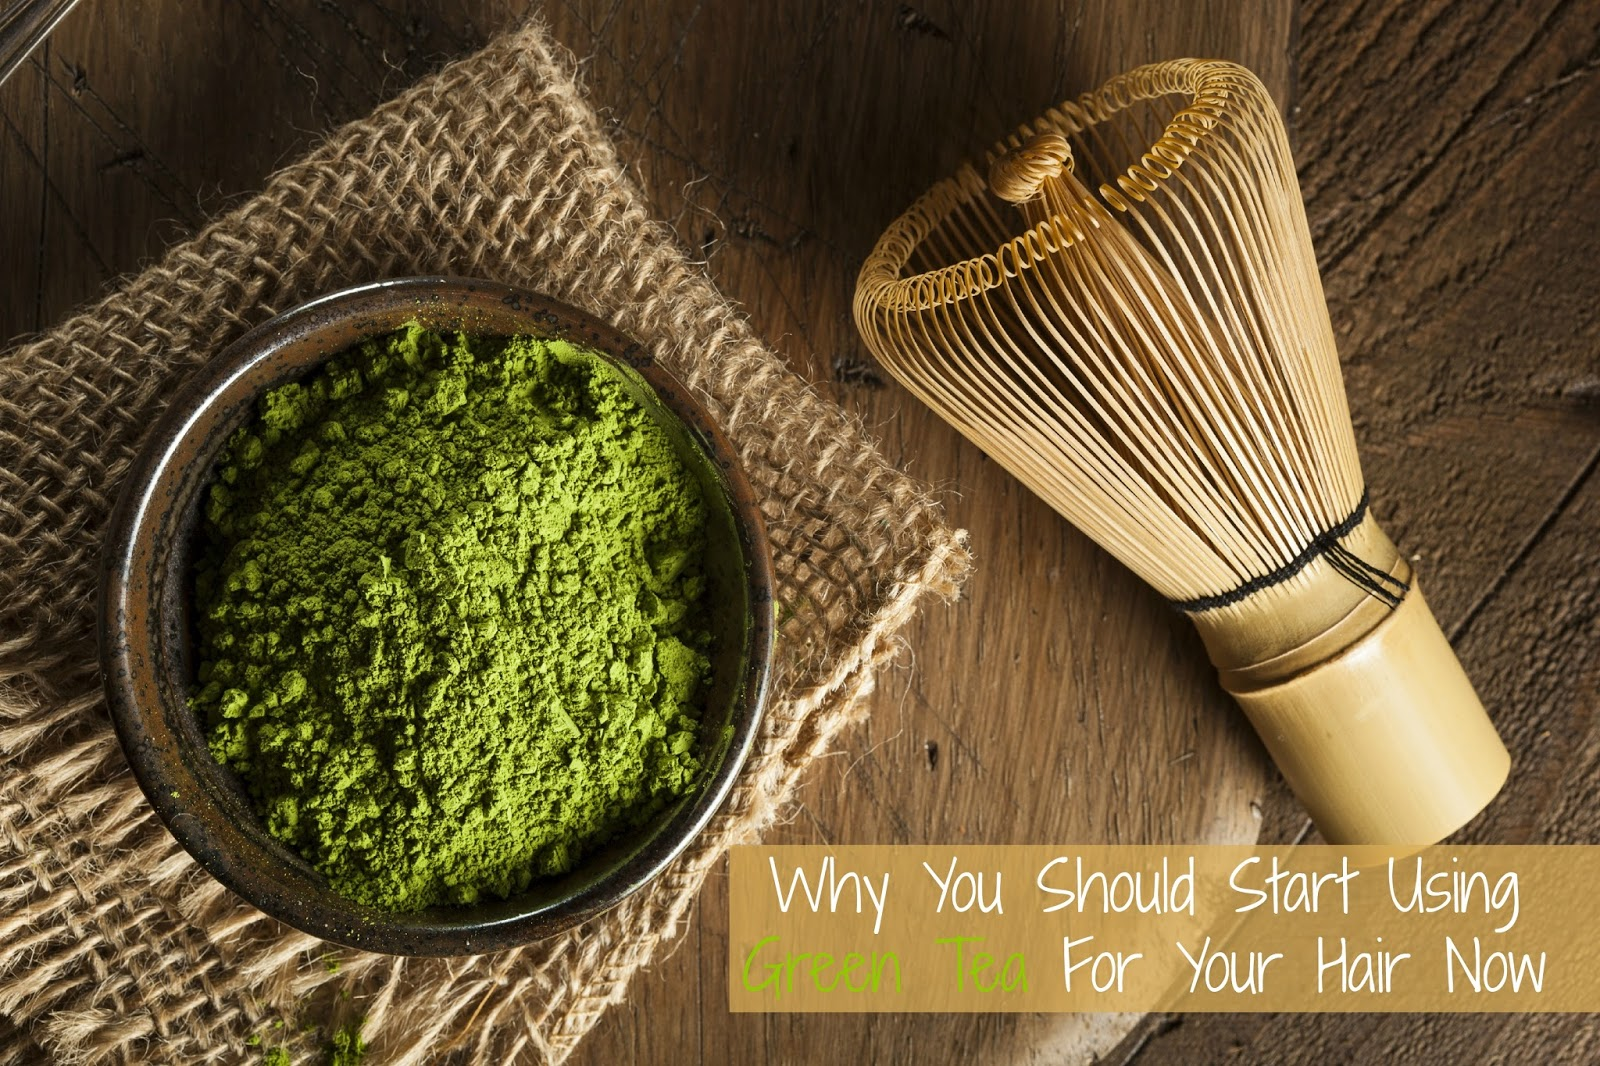 Why You Should Start Using Green Tea For Your Hair Now